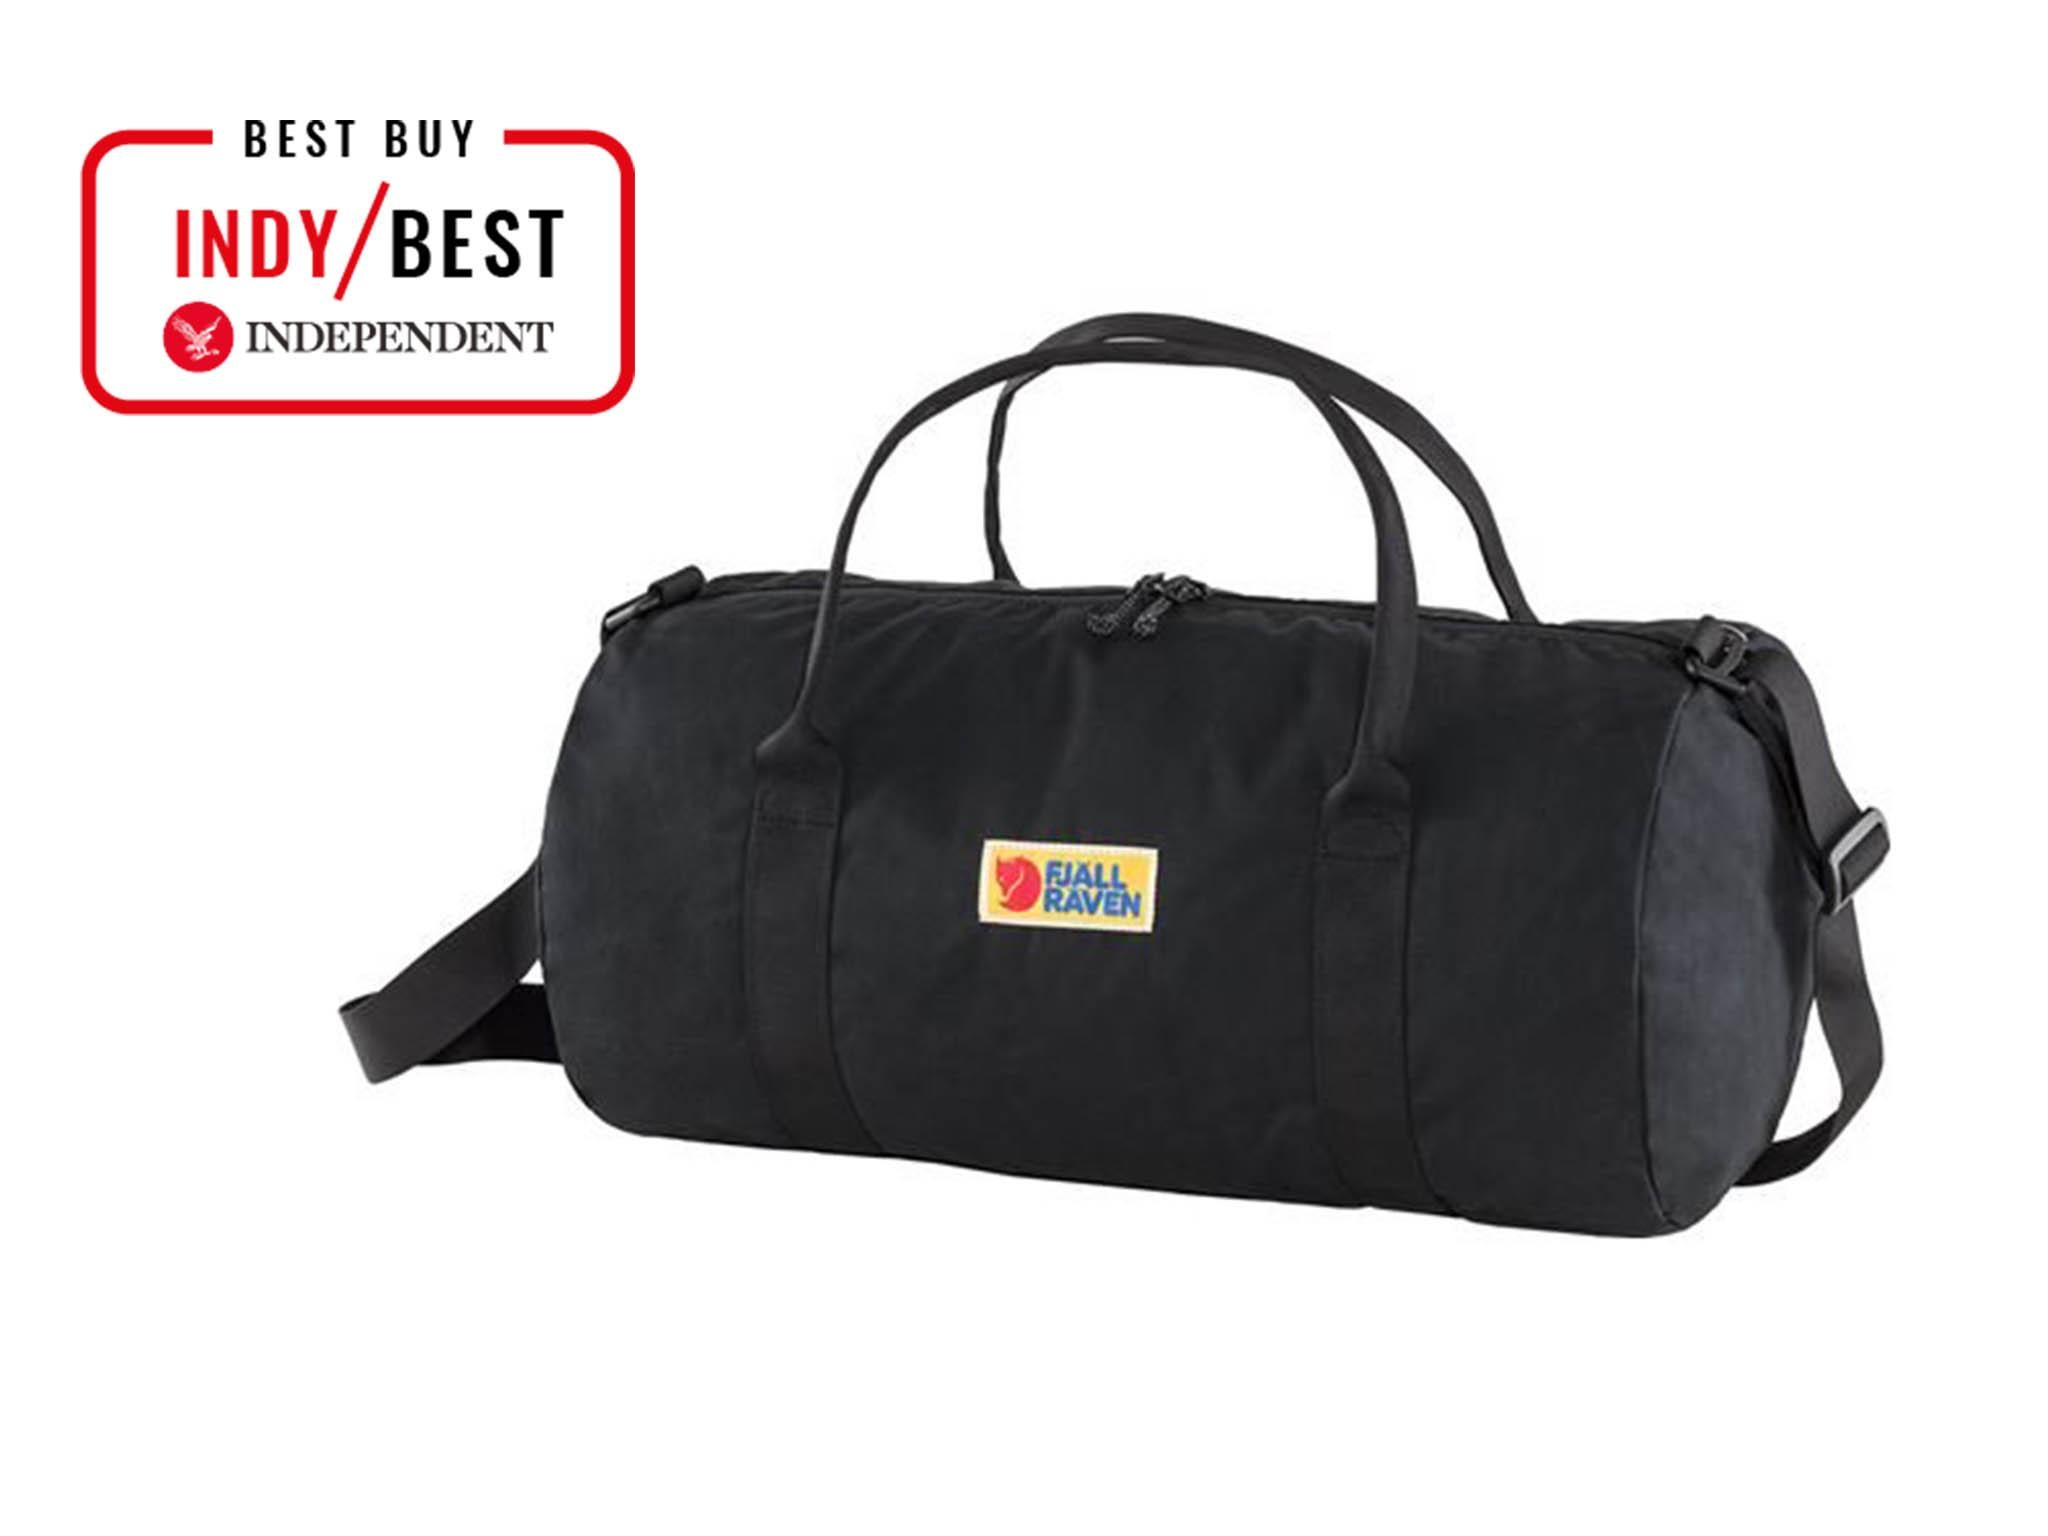 Travel Luggage Duffle Bag Lightweight Portable Handbag Surfing Sun Large Capacity Waterproof Foldable Storage Tote